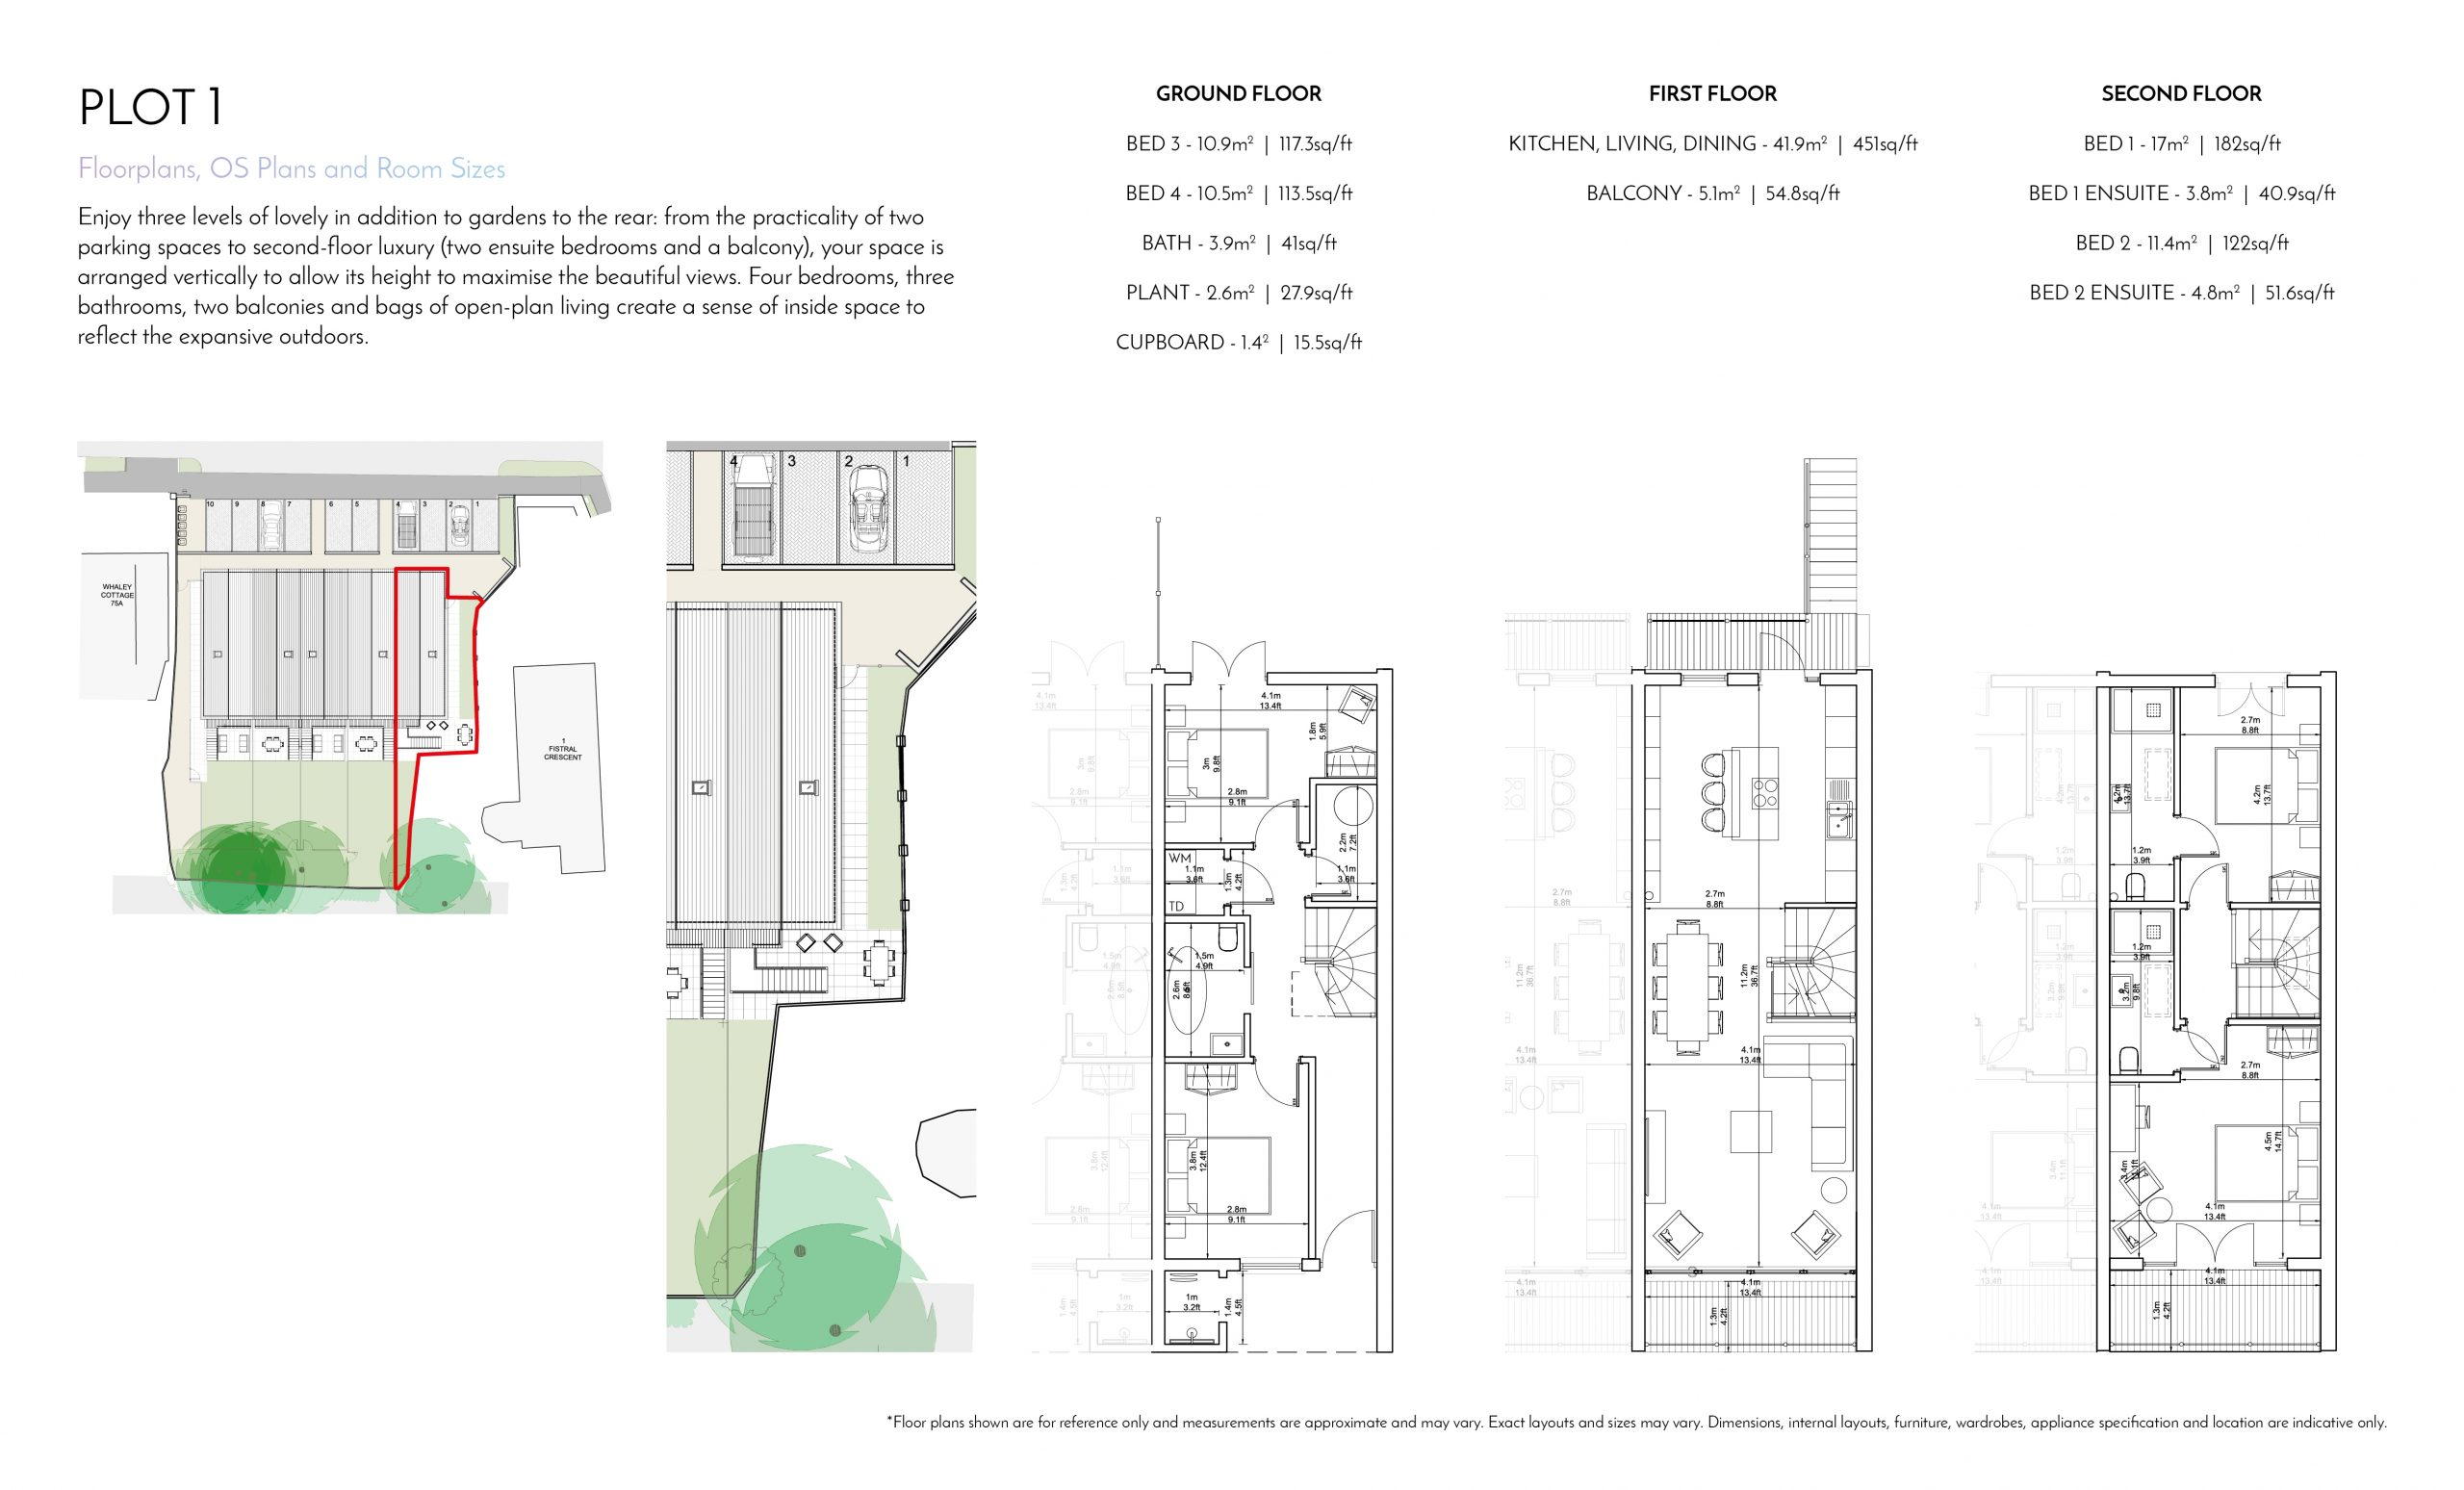 Stephens and Stephens Developers Breakwater Pentire Newquay Cornwall Floorplans Plot 1